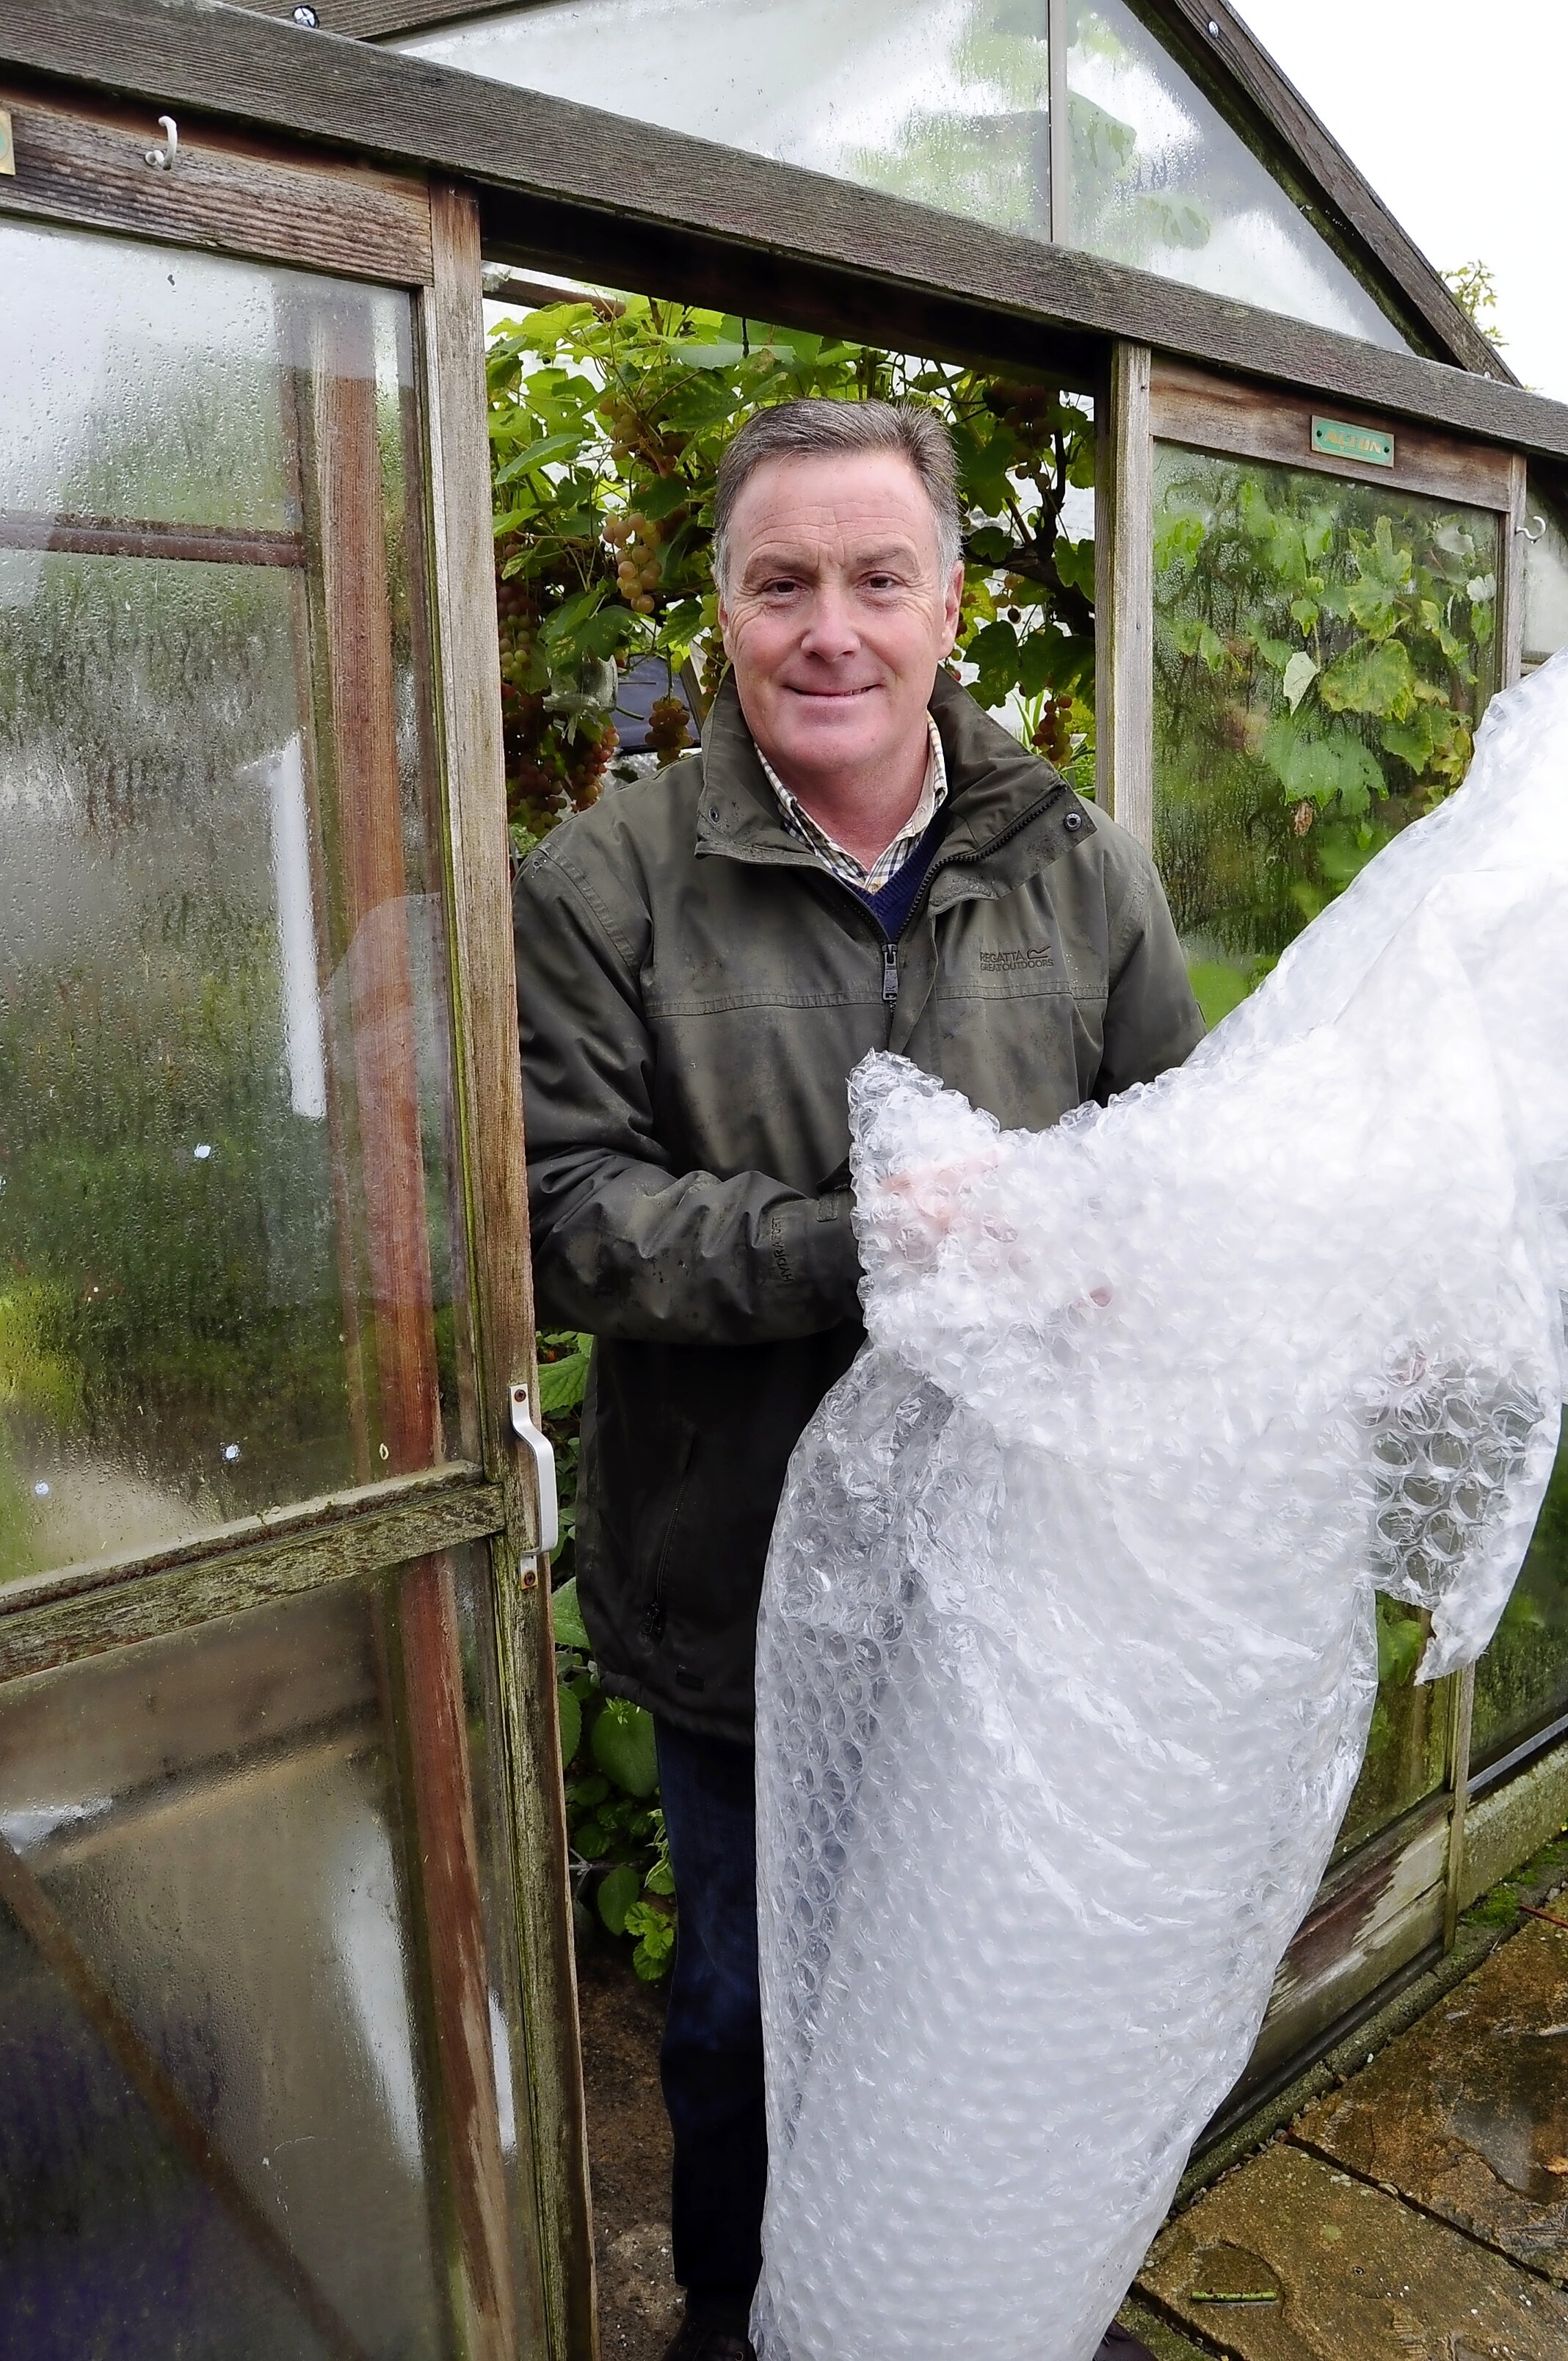 Get greenhouse ready for winter - main pic.jpg